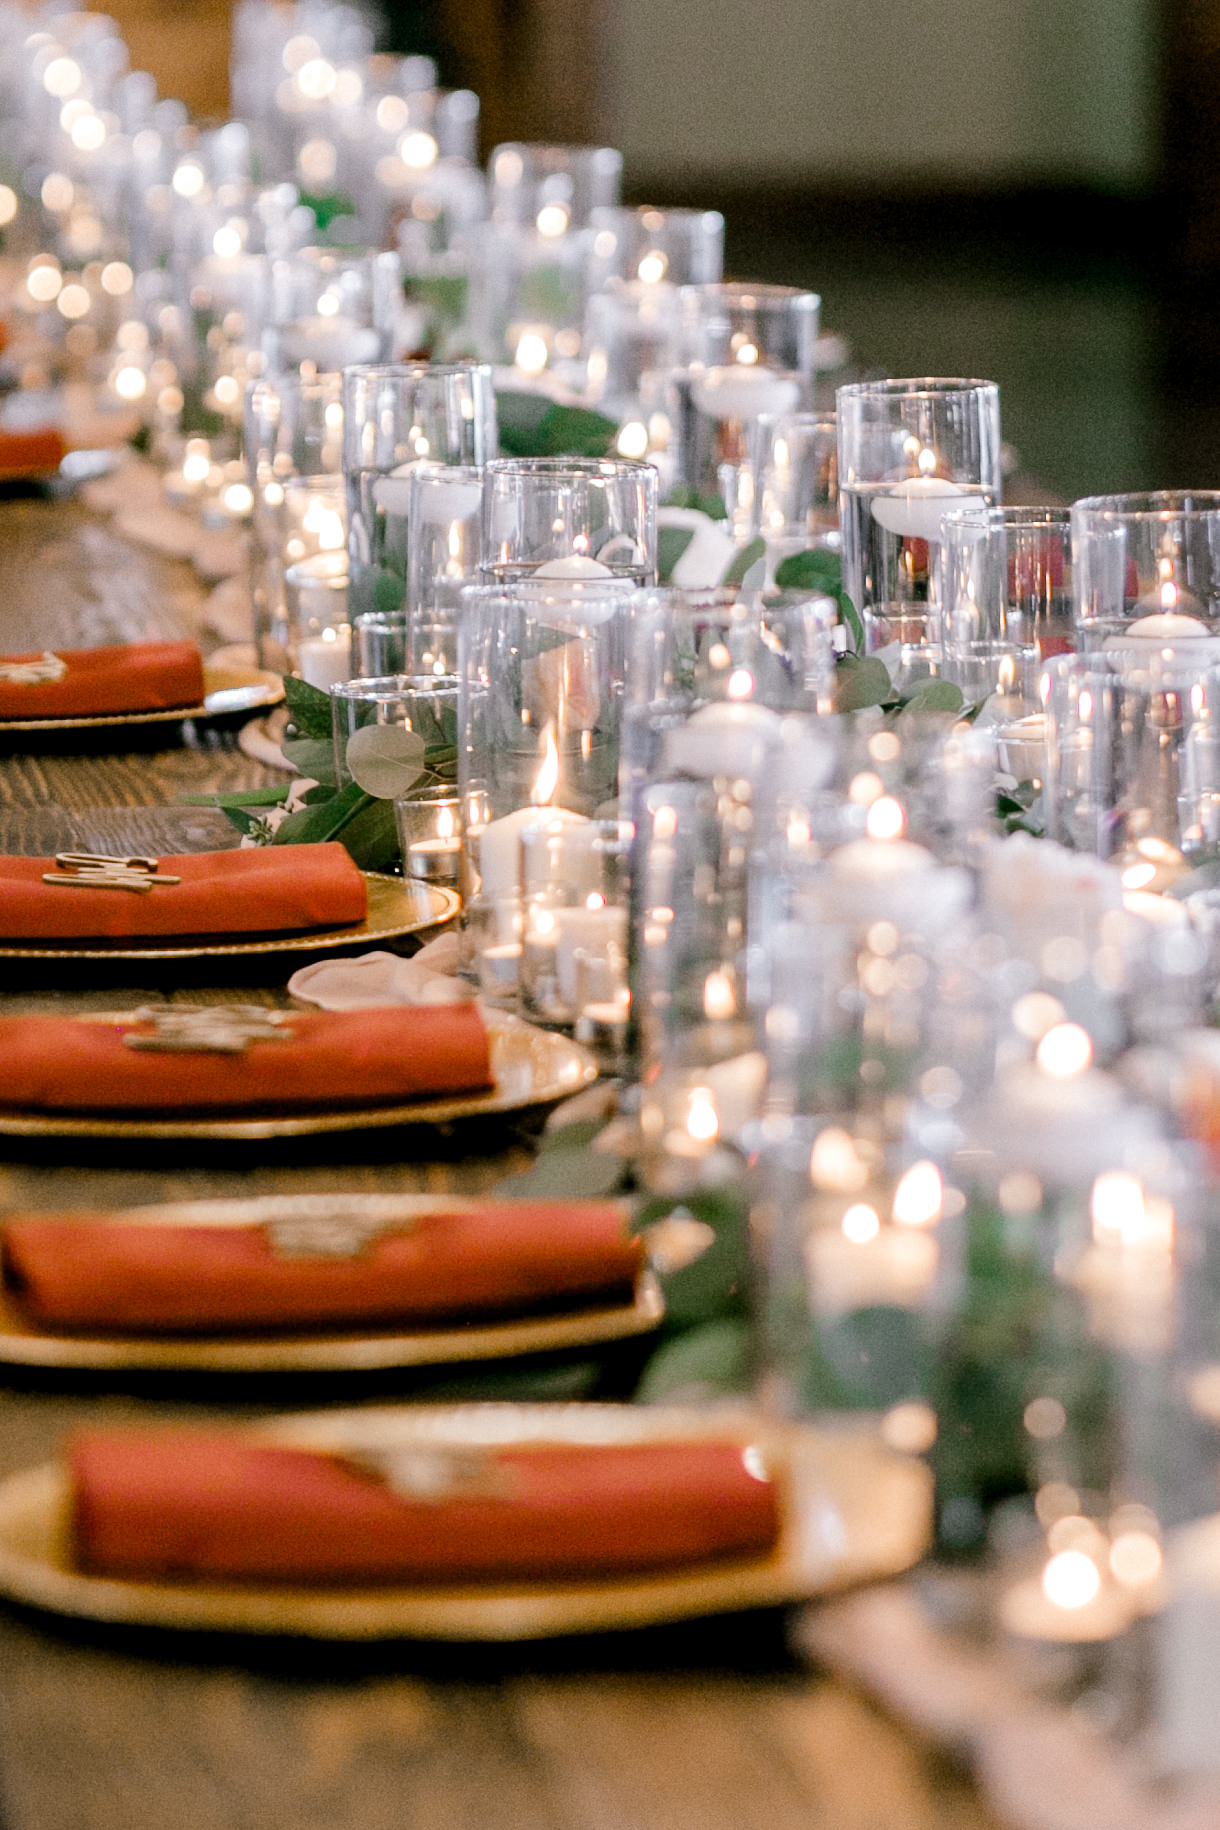 Natalie-and-Trent-Wedding-Day-THE-SPRINGS-EVENT-VENUE-Norman-Oklahoma-by-Emily-Nicole-Photo-609.jpg